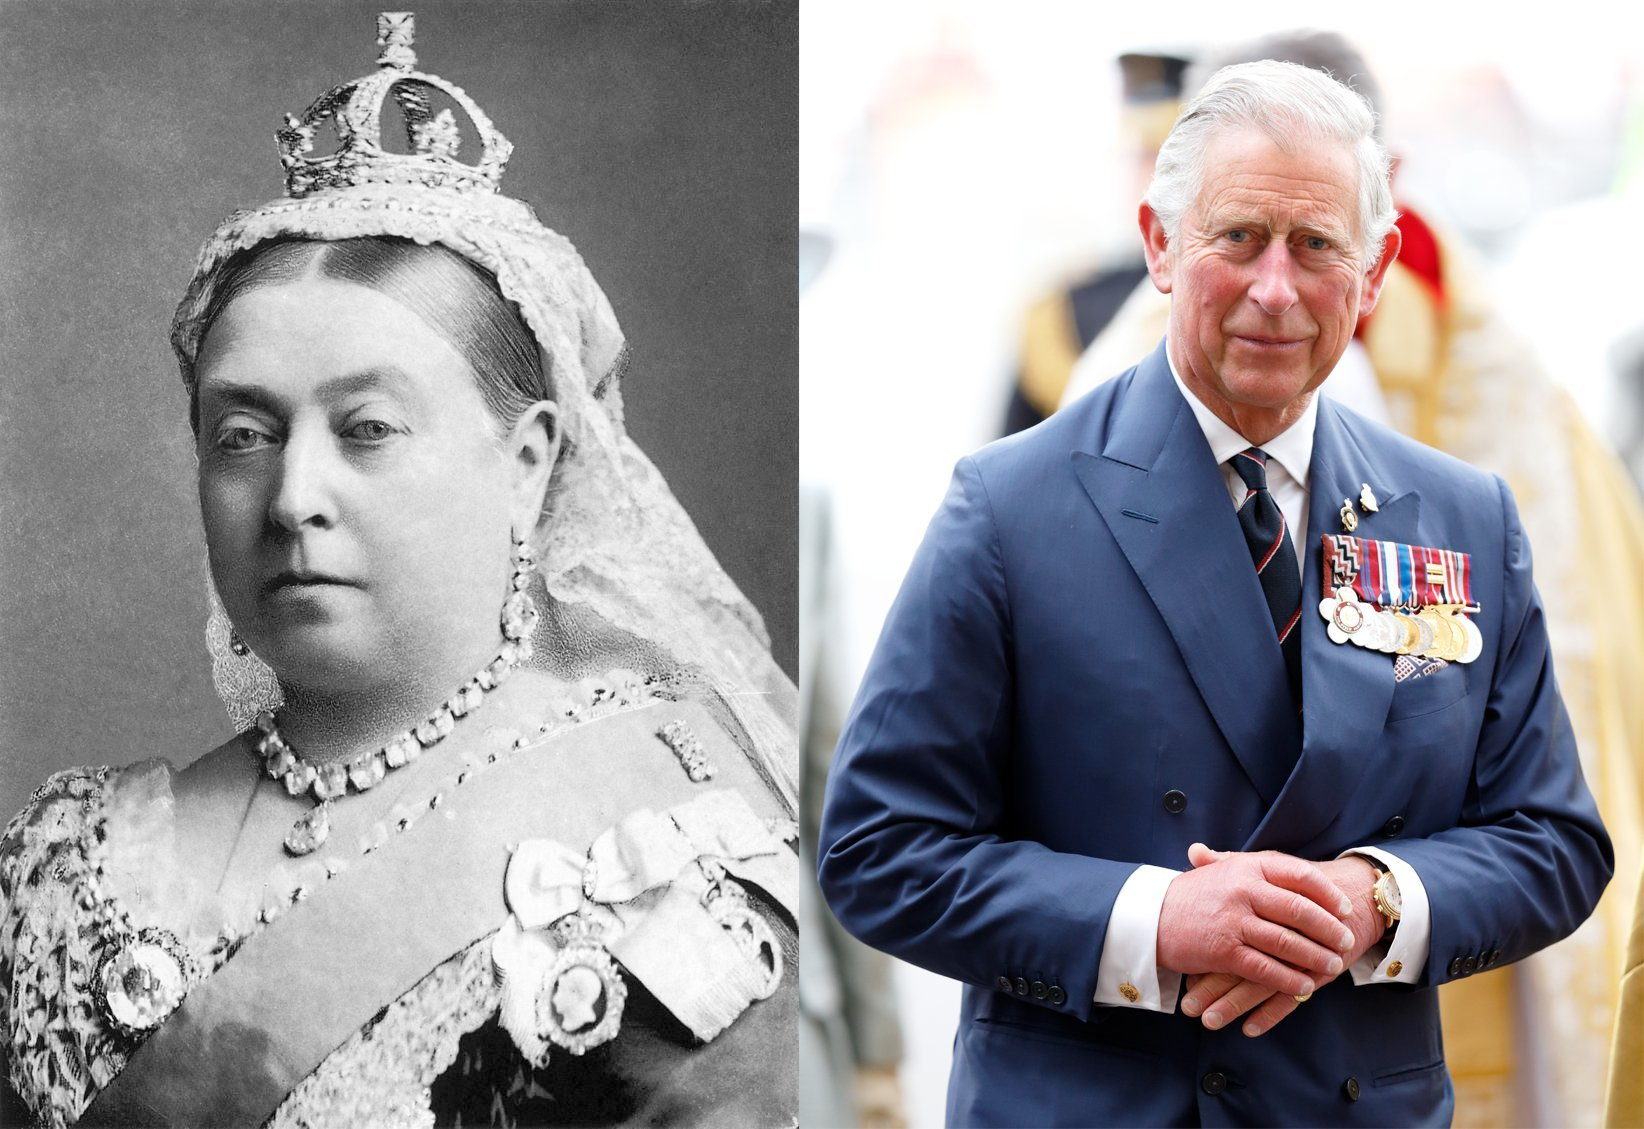 Queen Victoria and Prince Charles. I Image: Wikimedia Commons/ Getty Images.